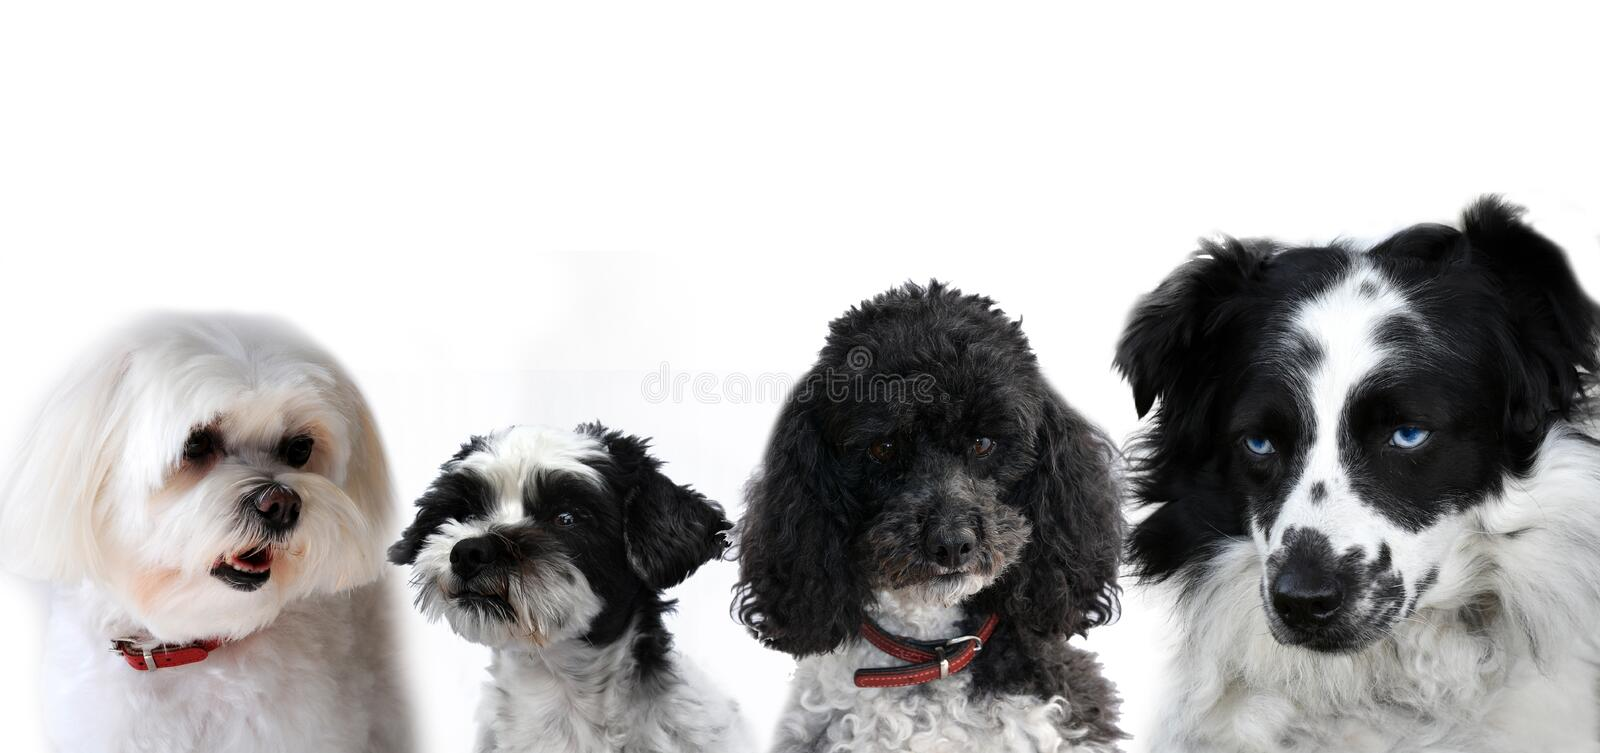 Group of black and white dogs stock photo